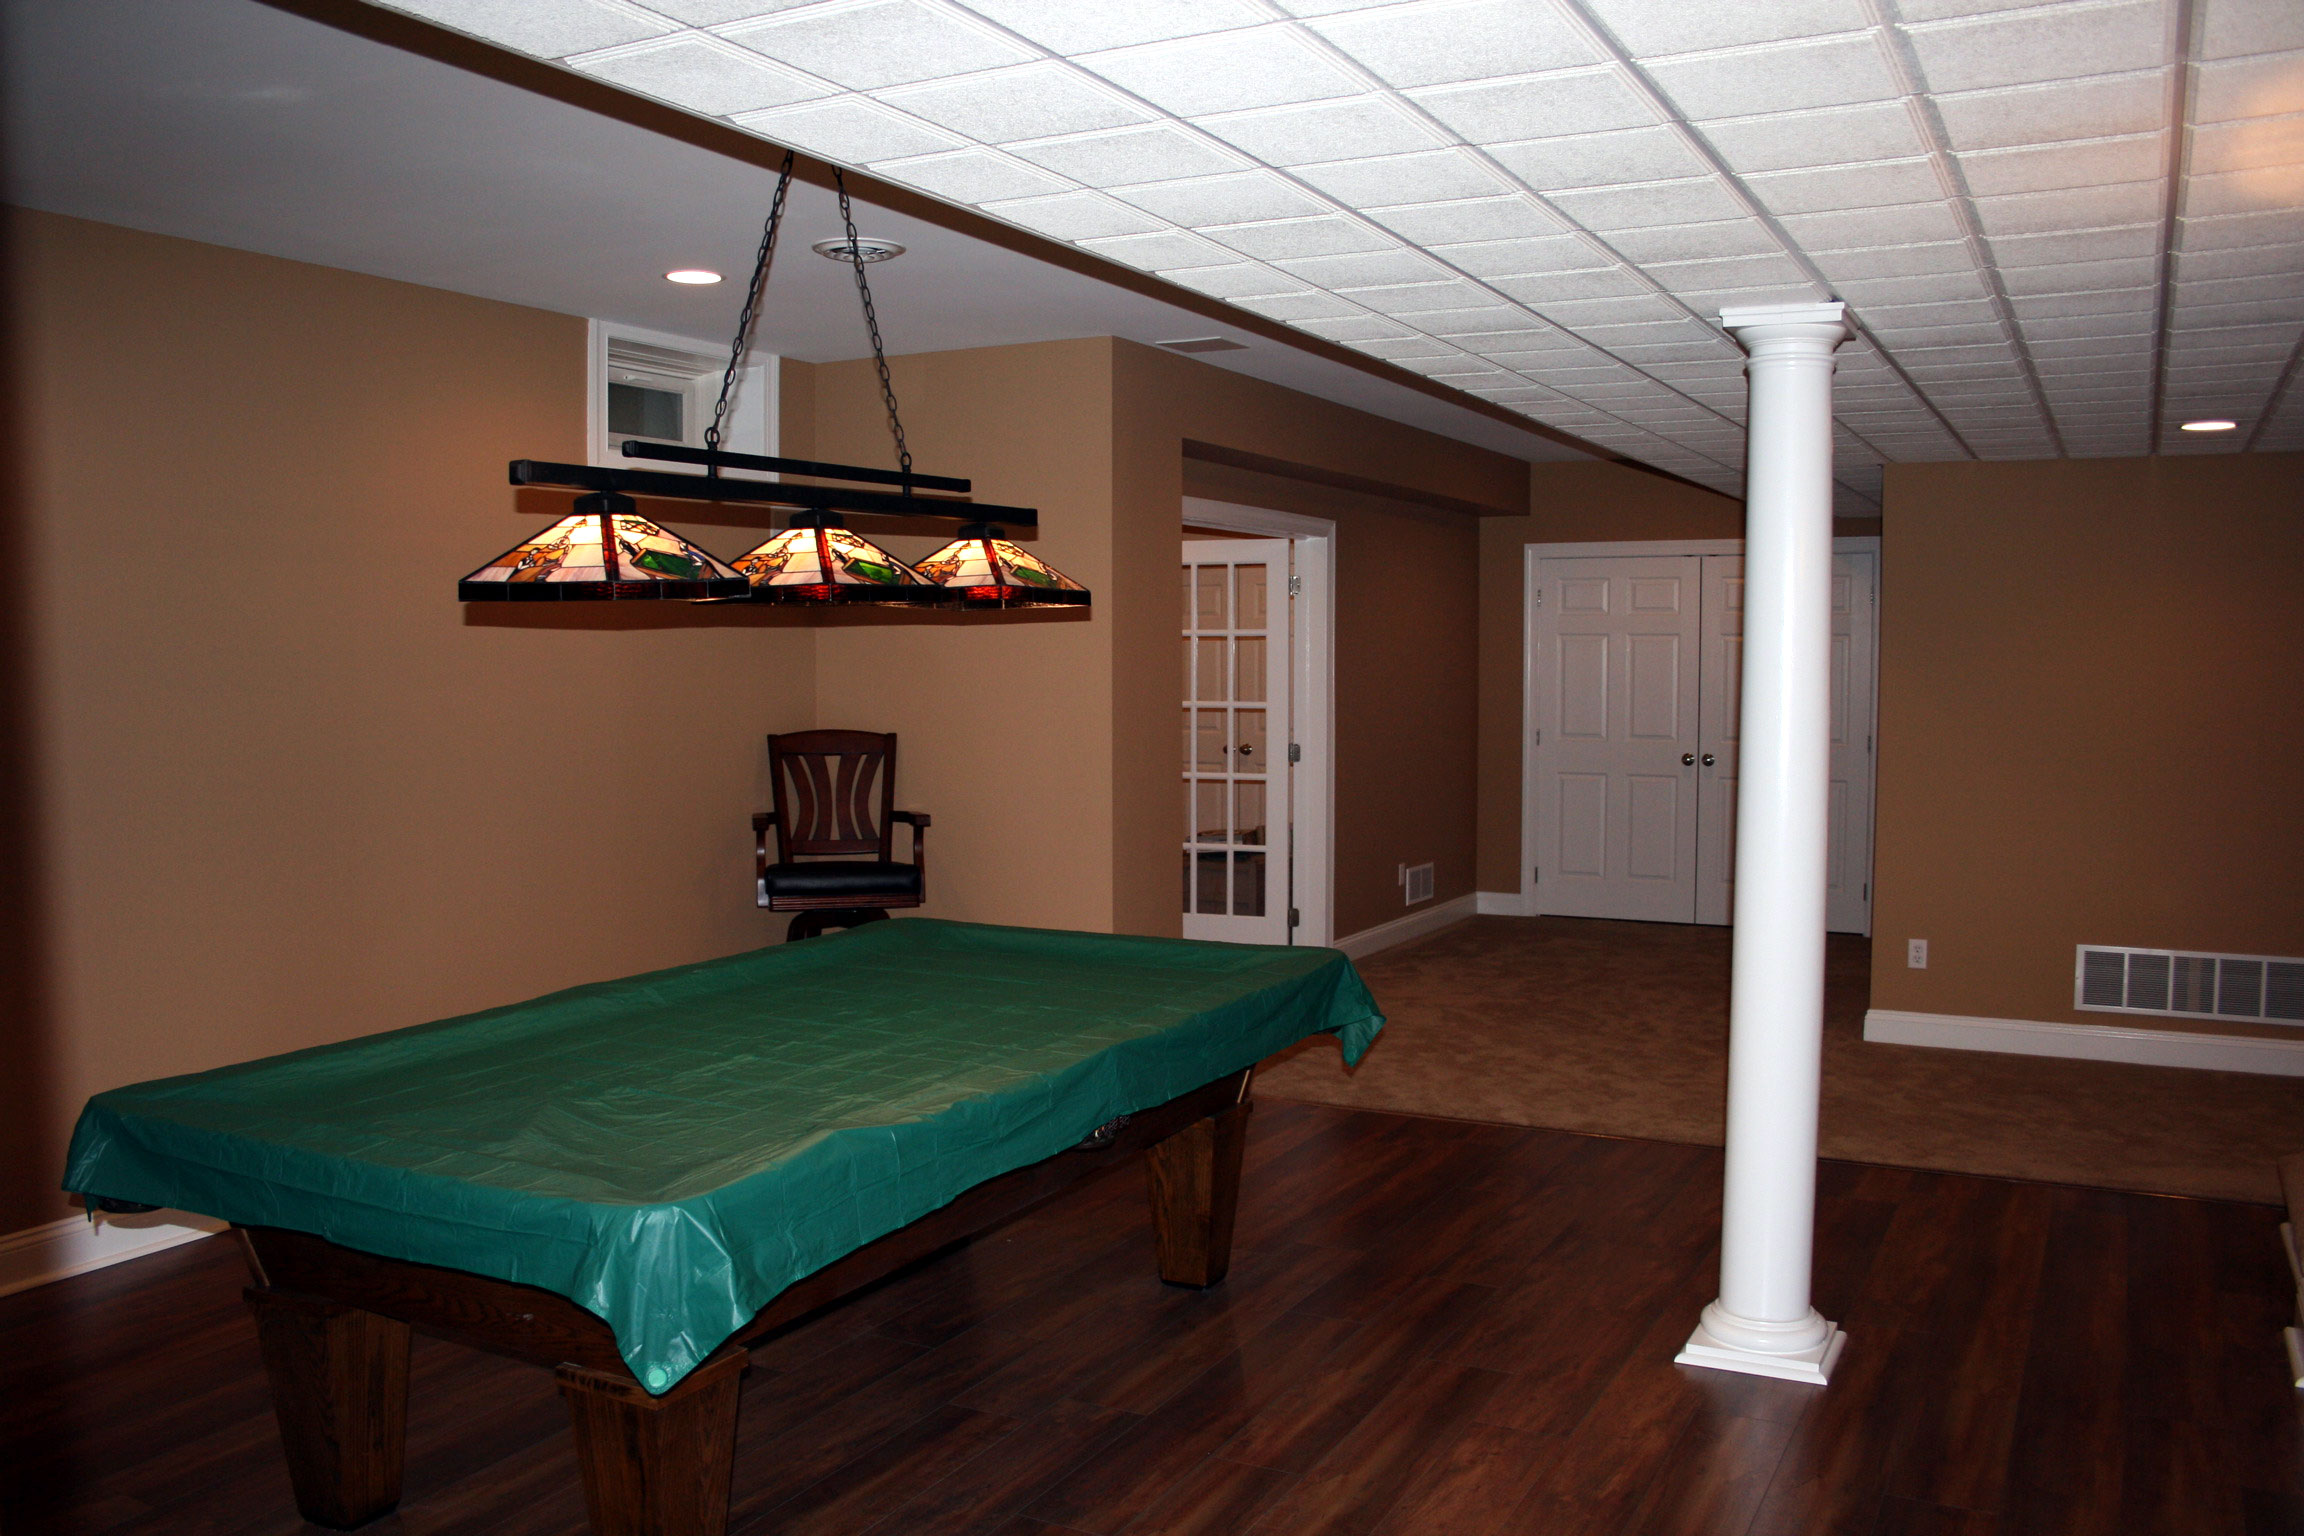 basement pool room features